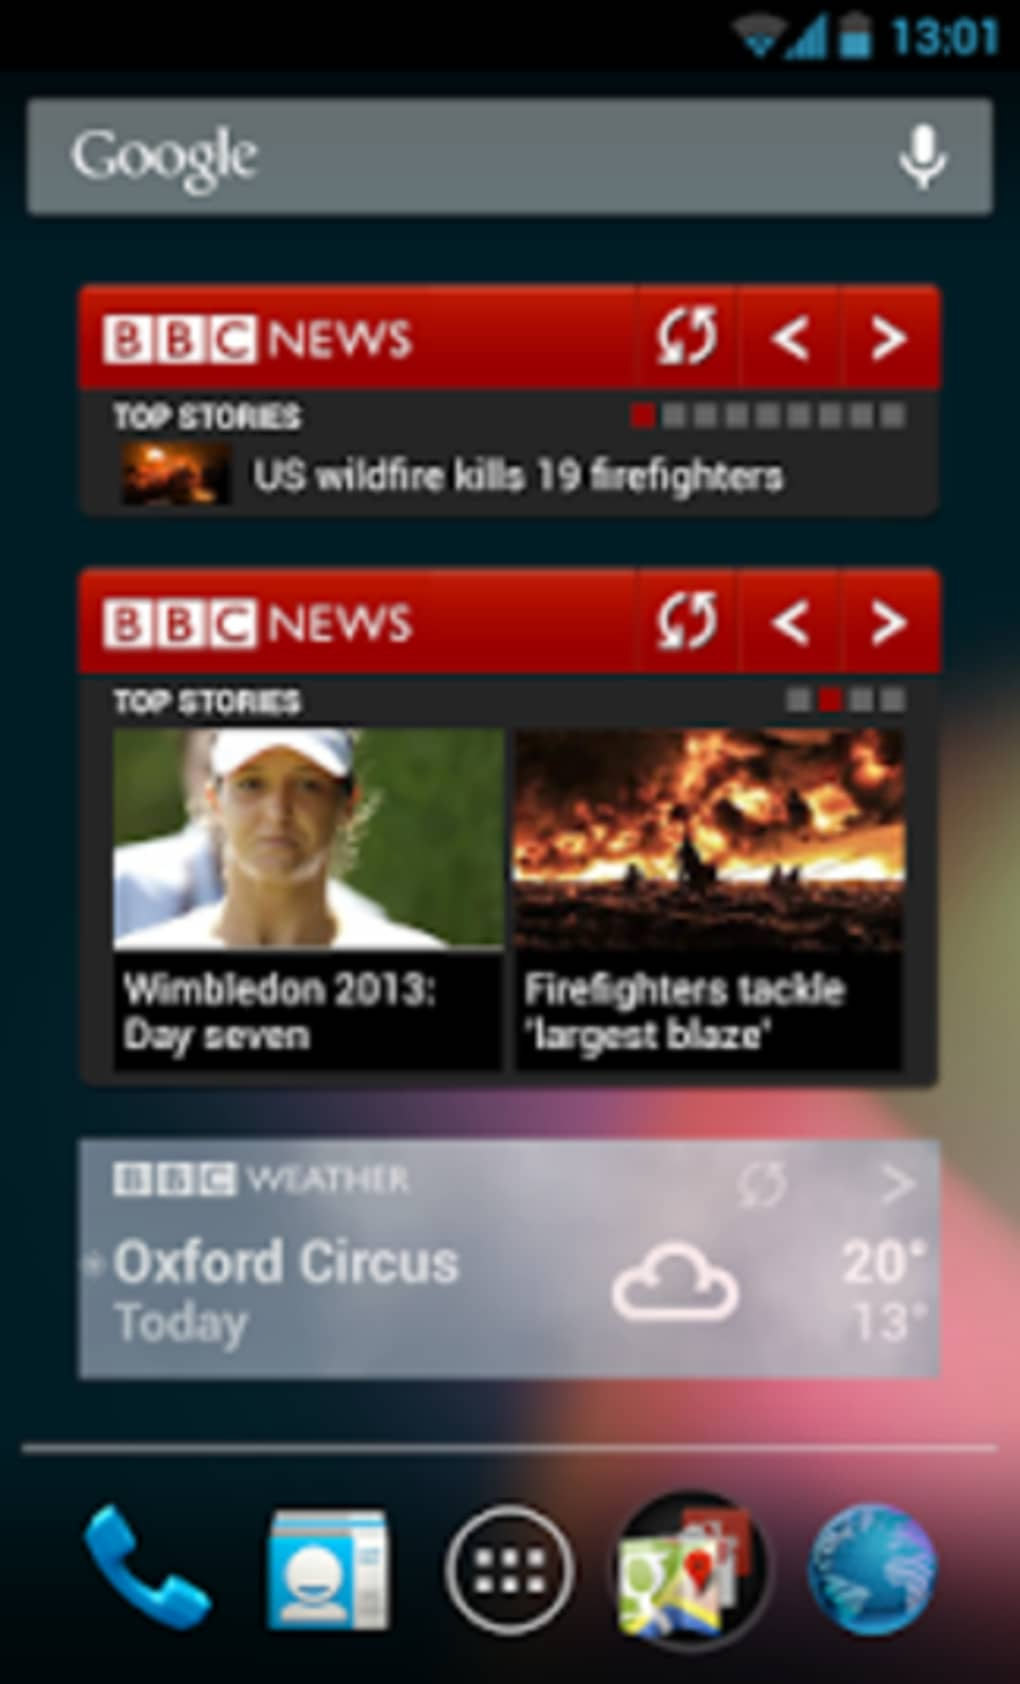 BBC News for Android - Download